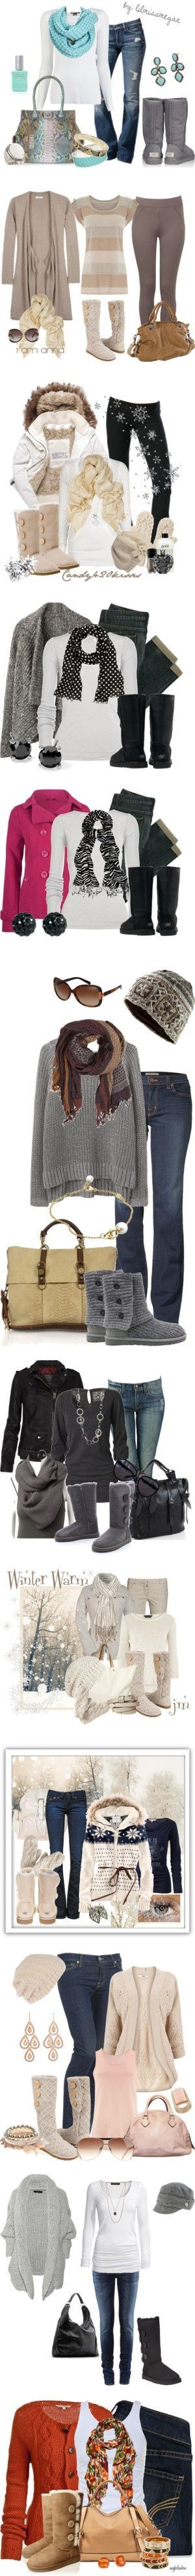 http://fancy.to/rm/460321888720131767 These are great winter outfits featuring many different styles of UGG Boots!